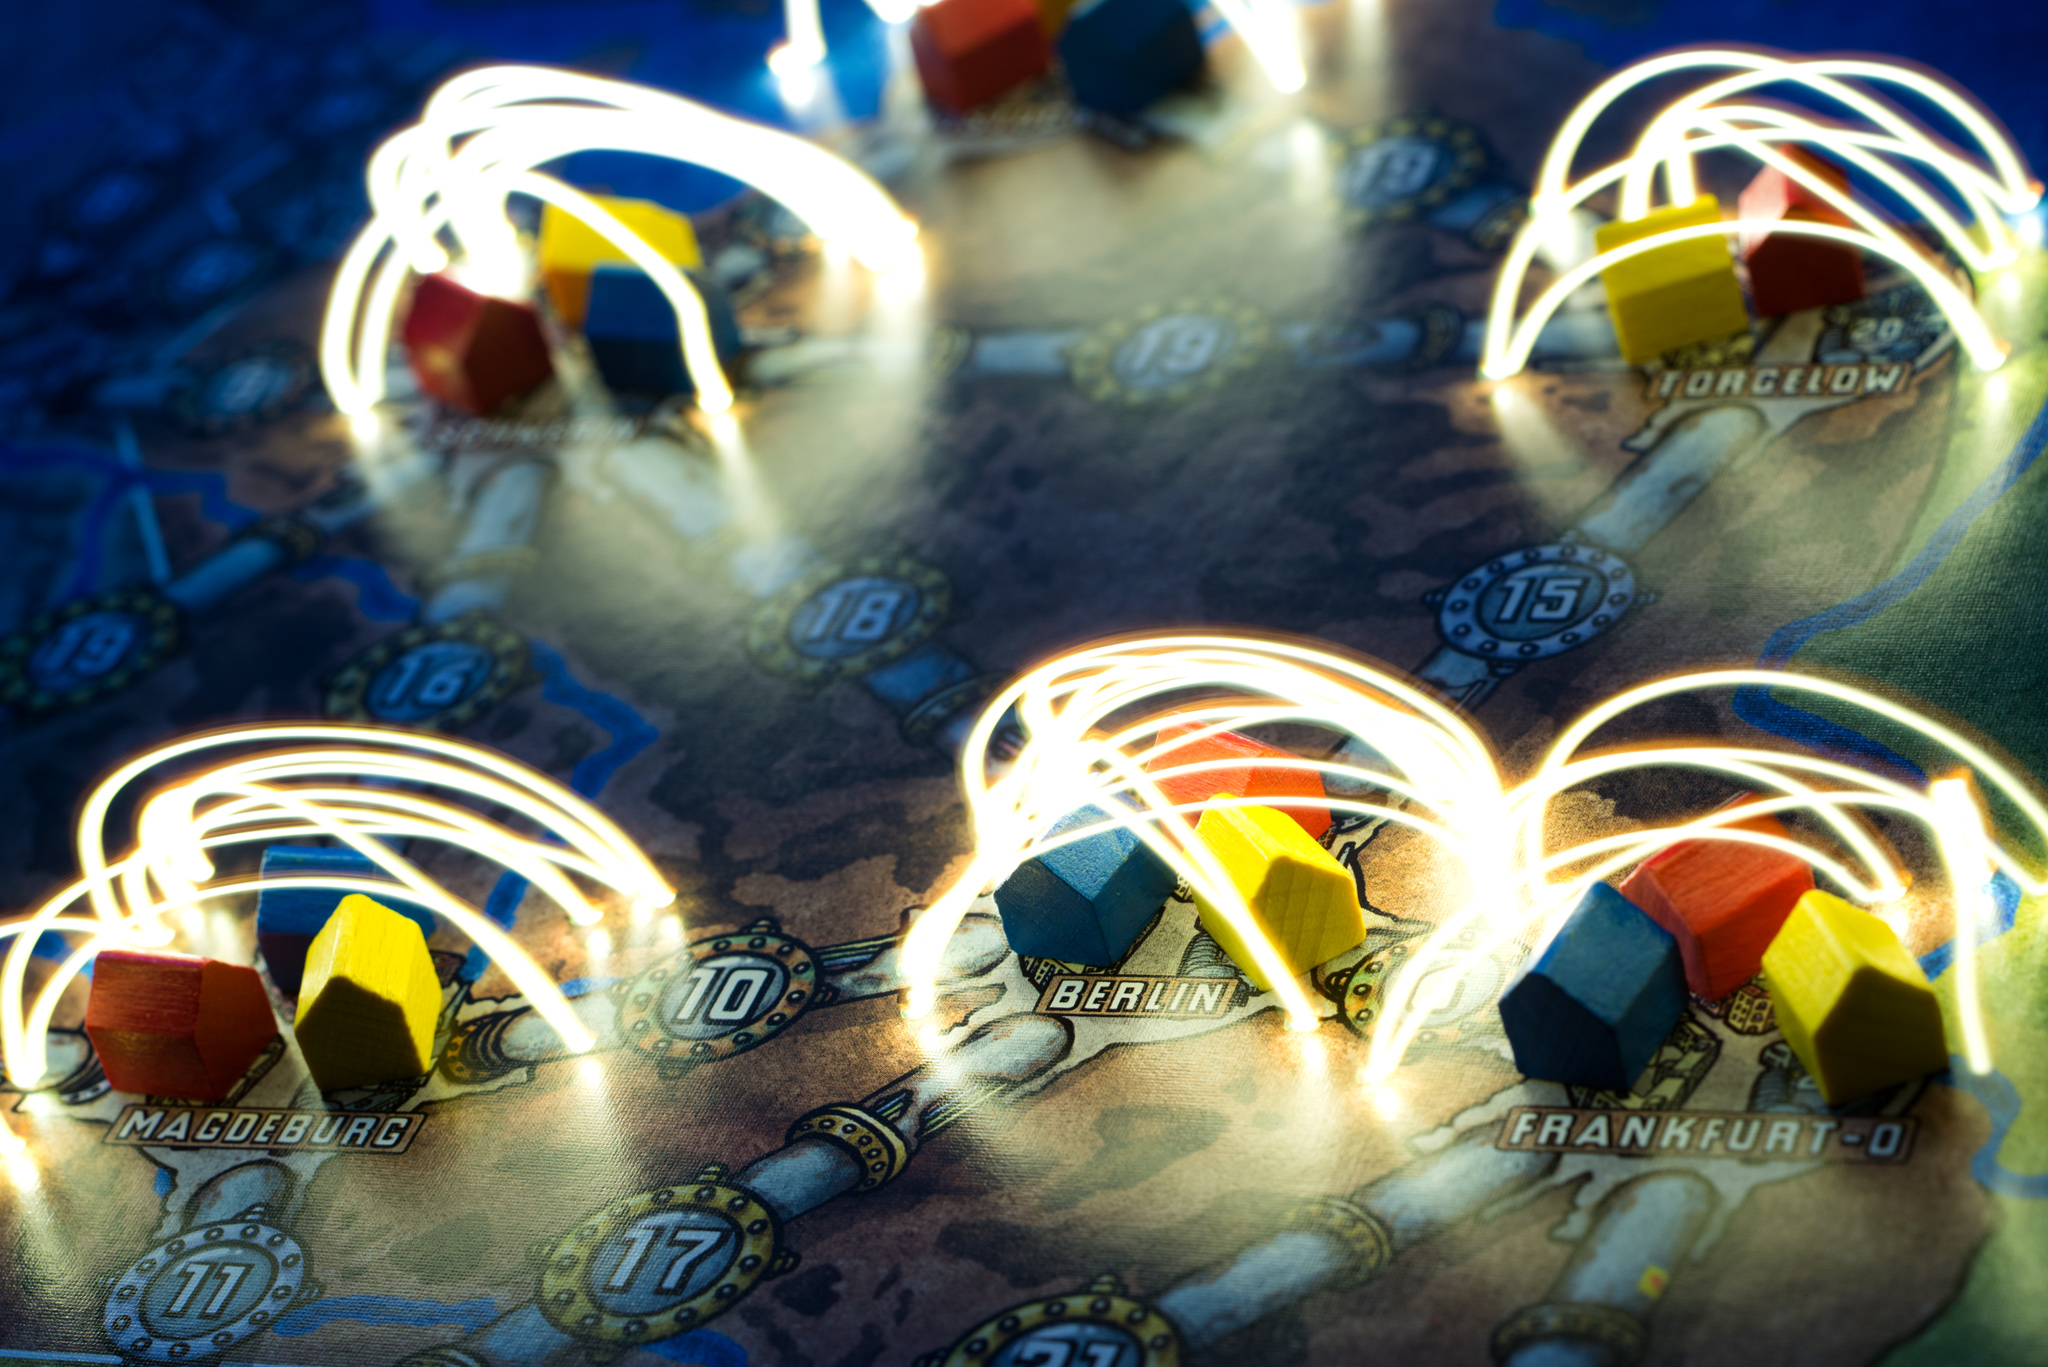 Zap! Electrifying image of Power Grid board game